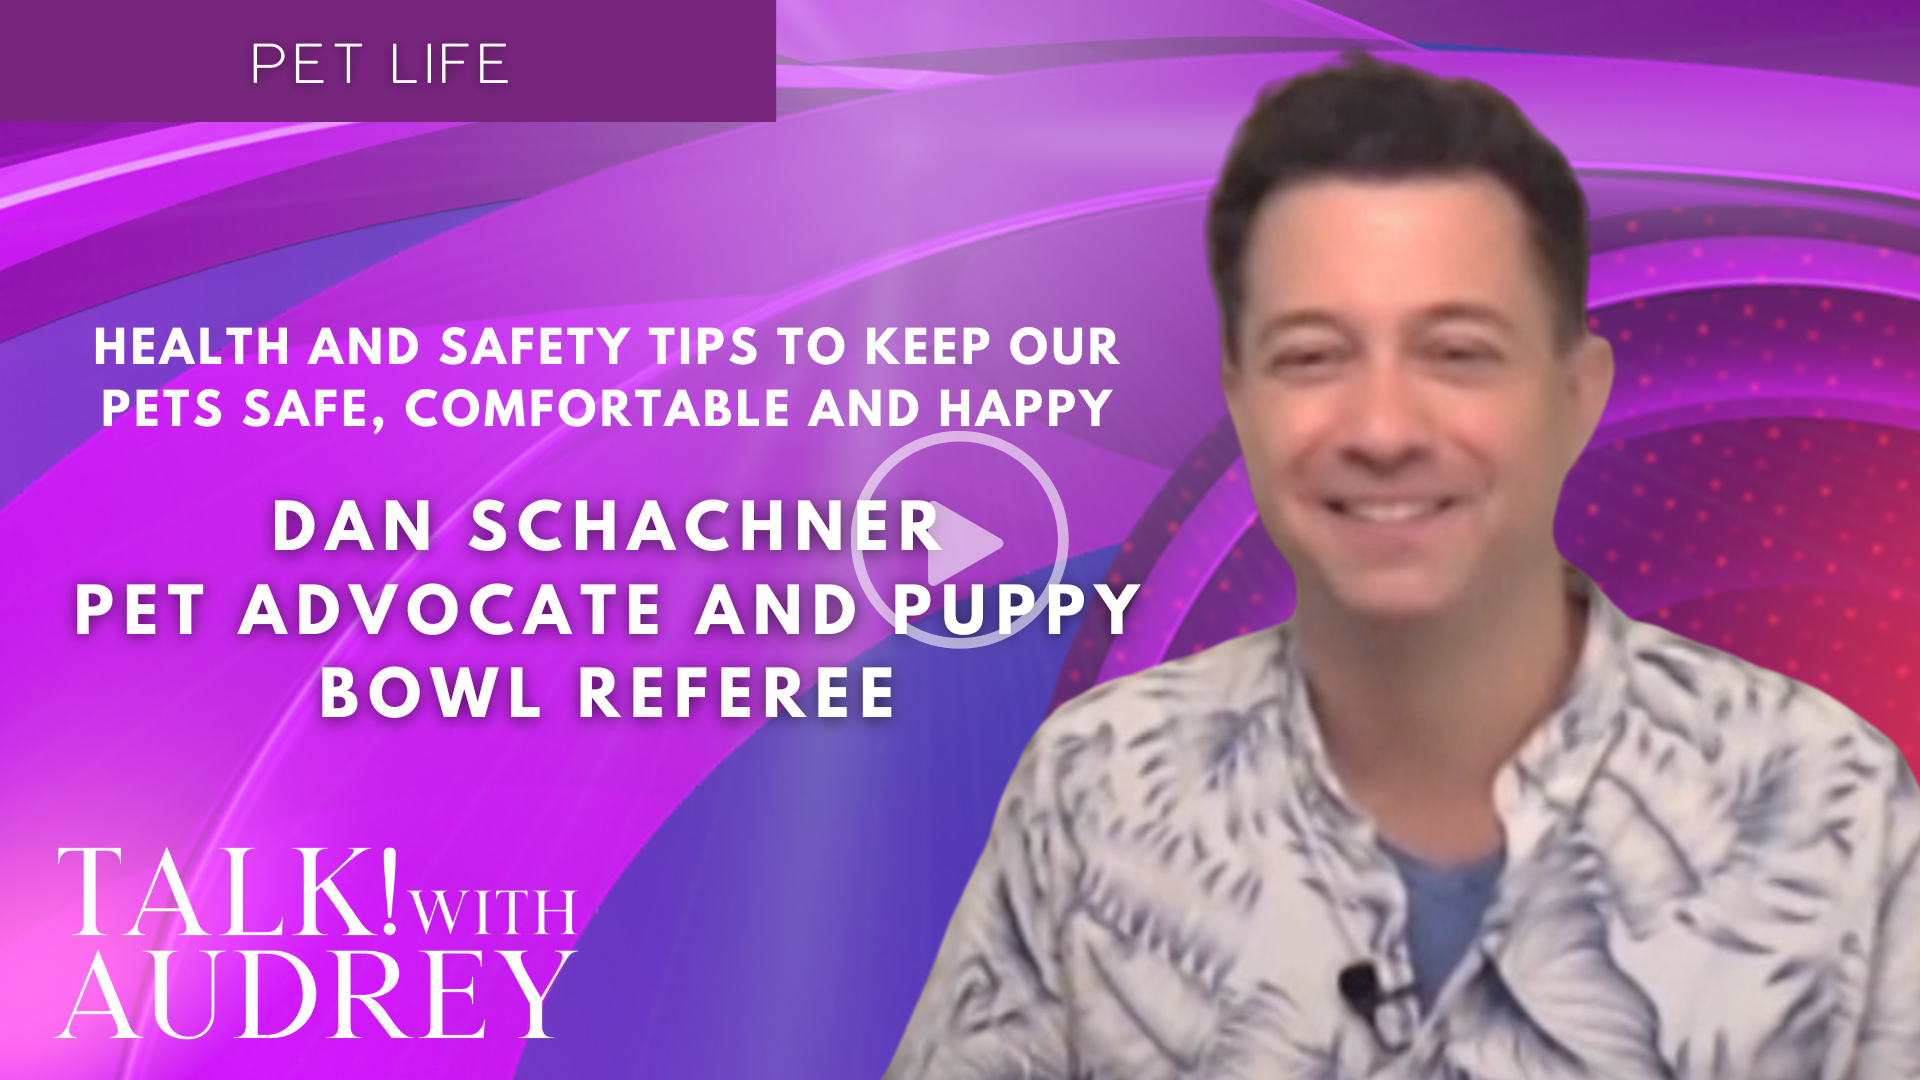 Dan Schachner, Pet Advocate and Puppy Bowl Referee – Health and Safety Tips to Keep Our Pets Safe, Comfortable and Happy